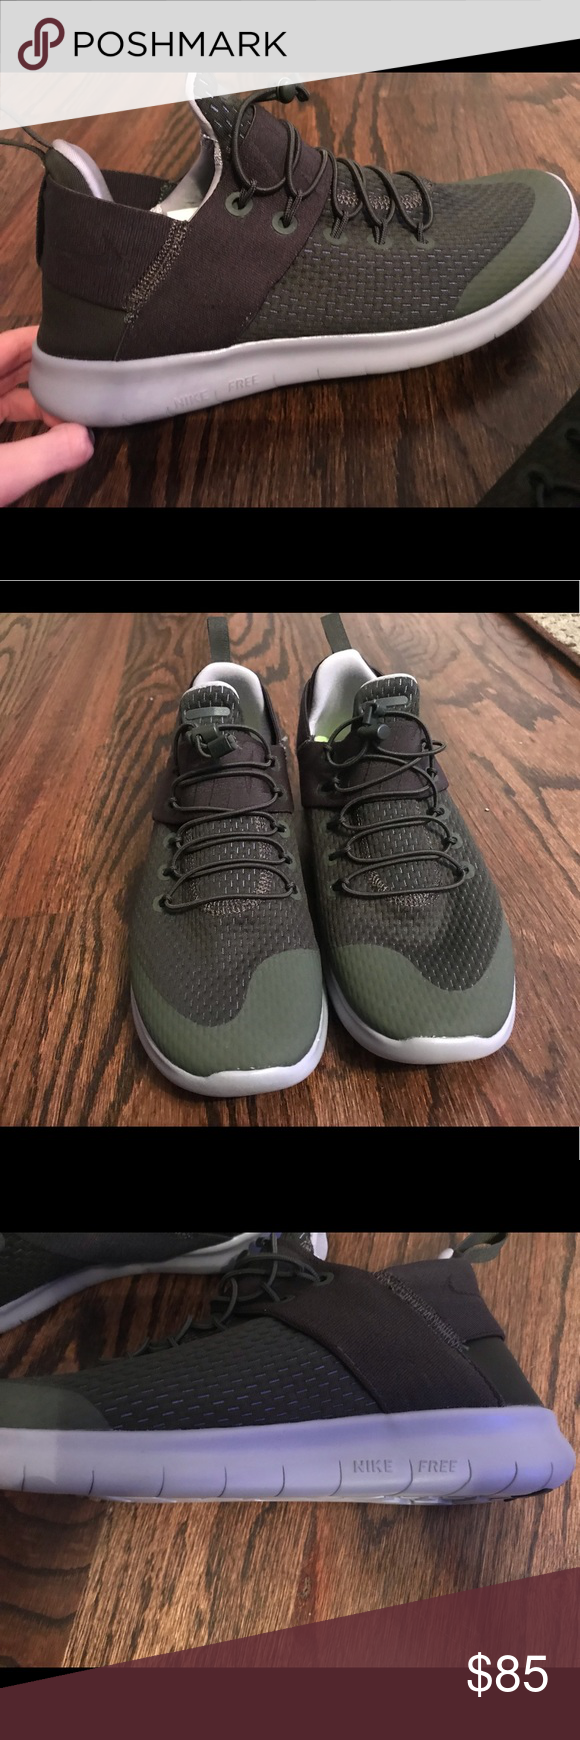 Nike Shoes   Never Worn Nike Free Runs   Color: Green   Size: 9 #nikefreeoutfit